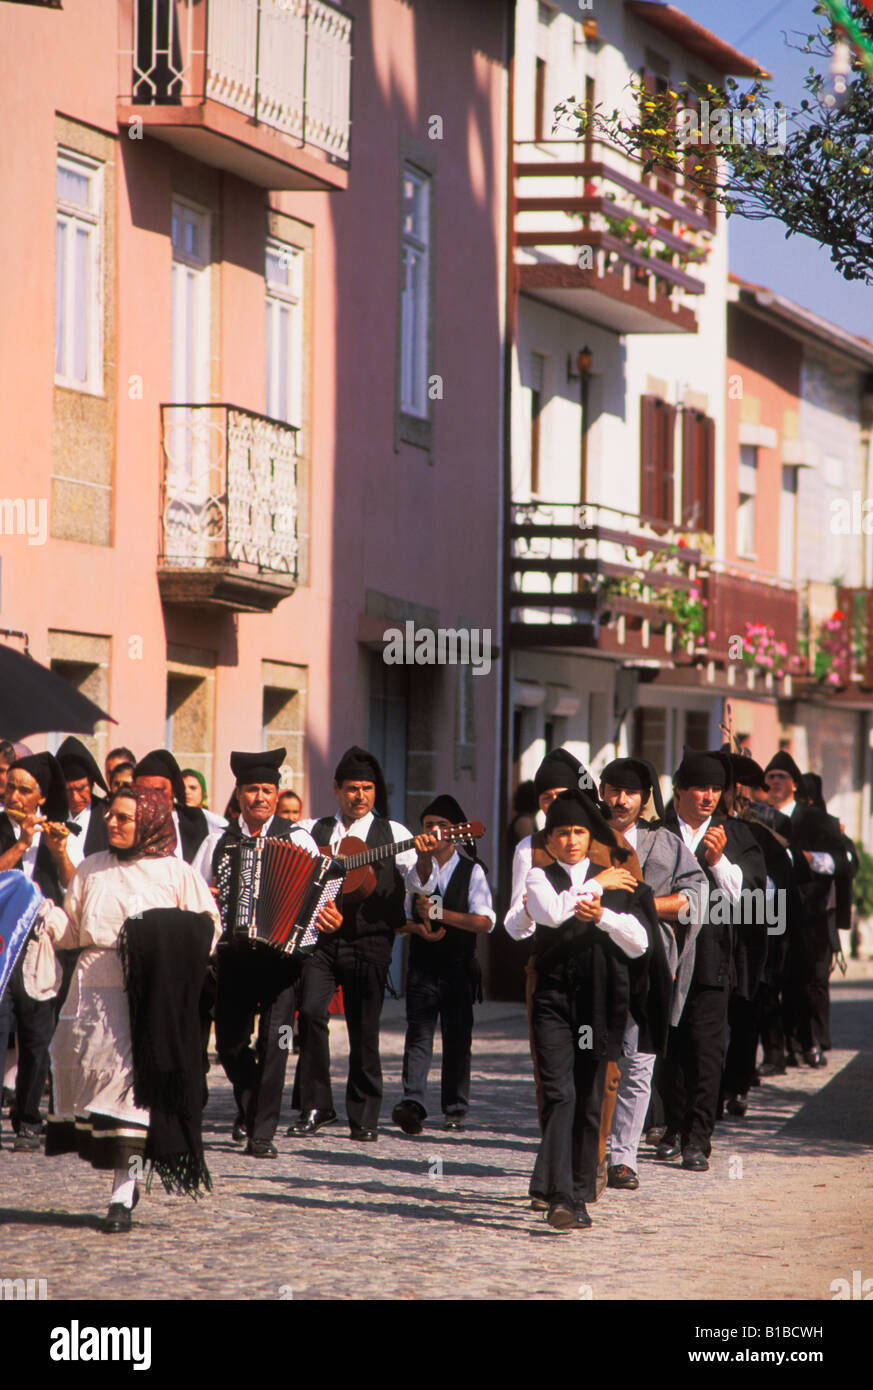 Traditionally costumed Musicians at Folklore Festival in Baqueiros in Minho on the Northern Atlantic coast of Portugal - Stock Image